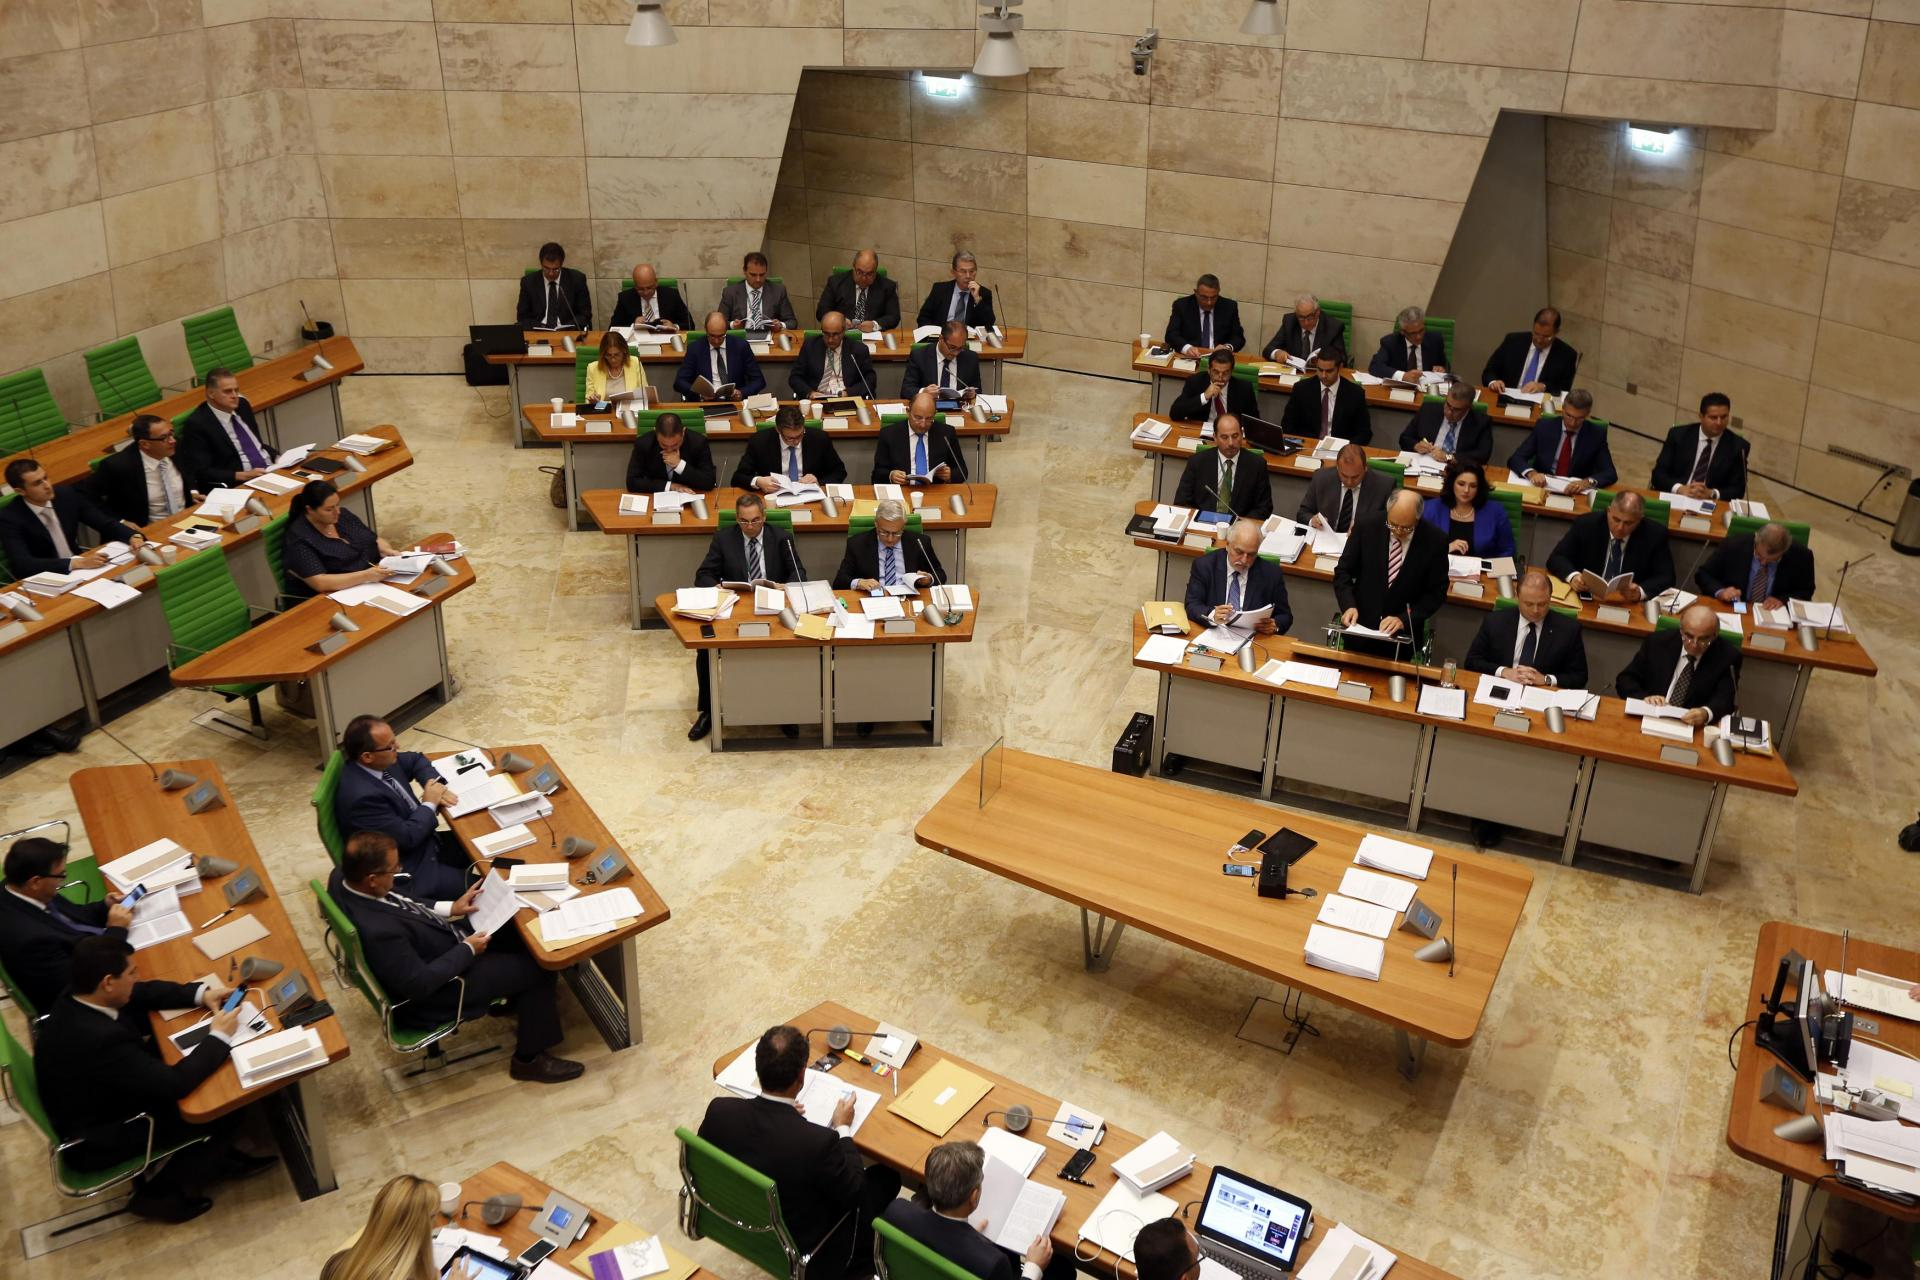 MPs have yet to vote on a final Bill introducing Good Samaritan laws into Malta.